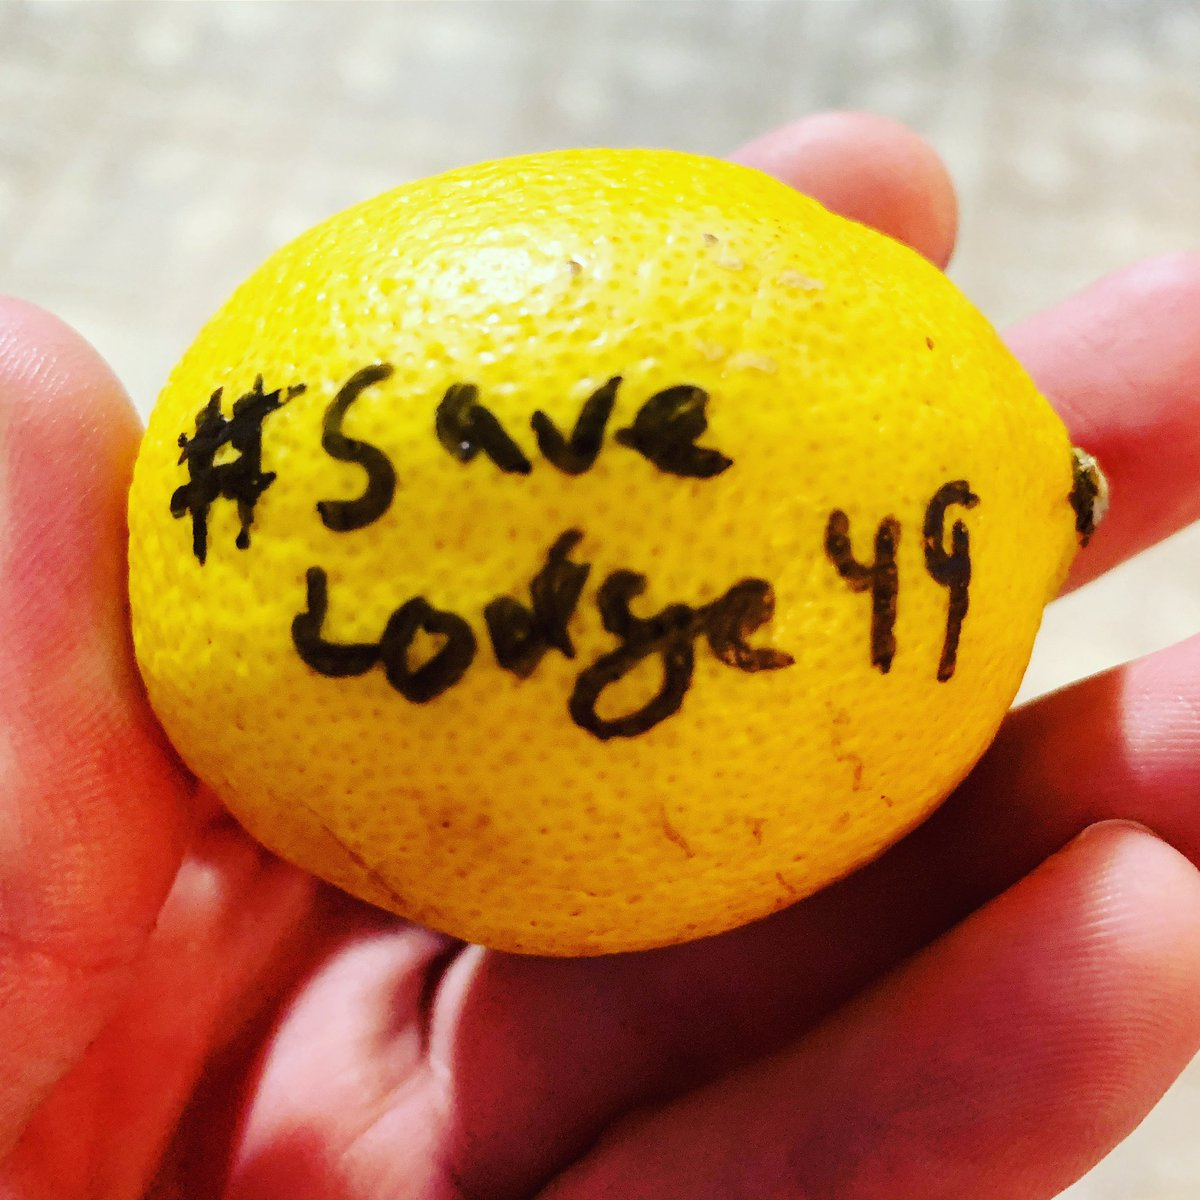 Why should you #JoinLodge49 ? Because we're on the Lemon Standard now! #SaveLodge49